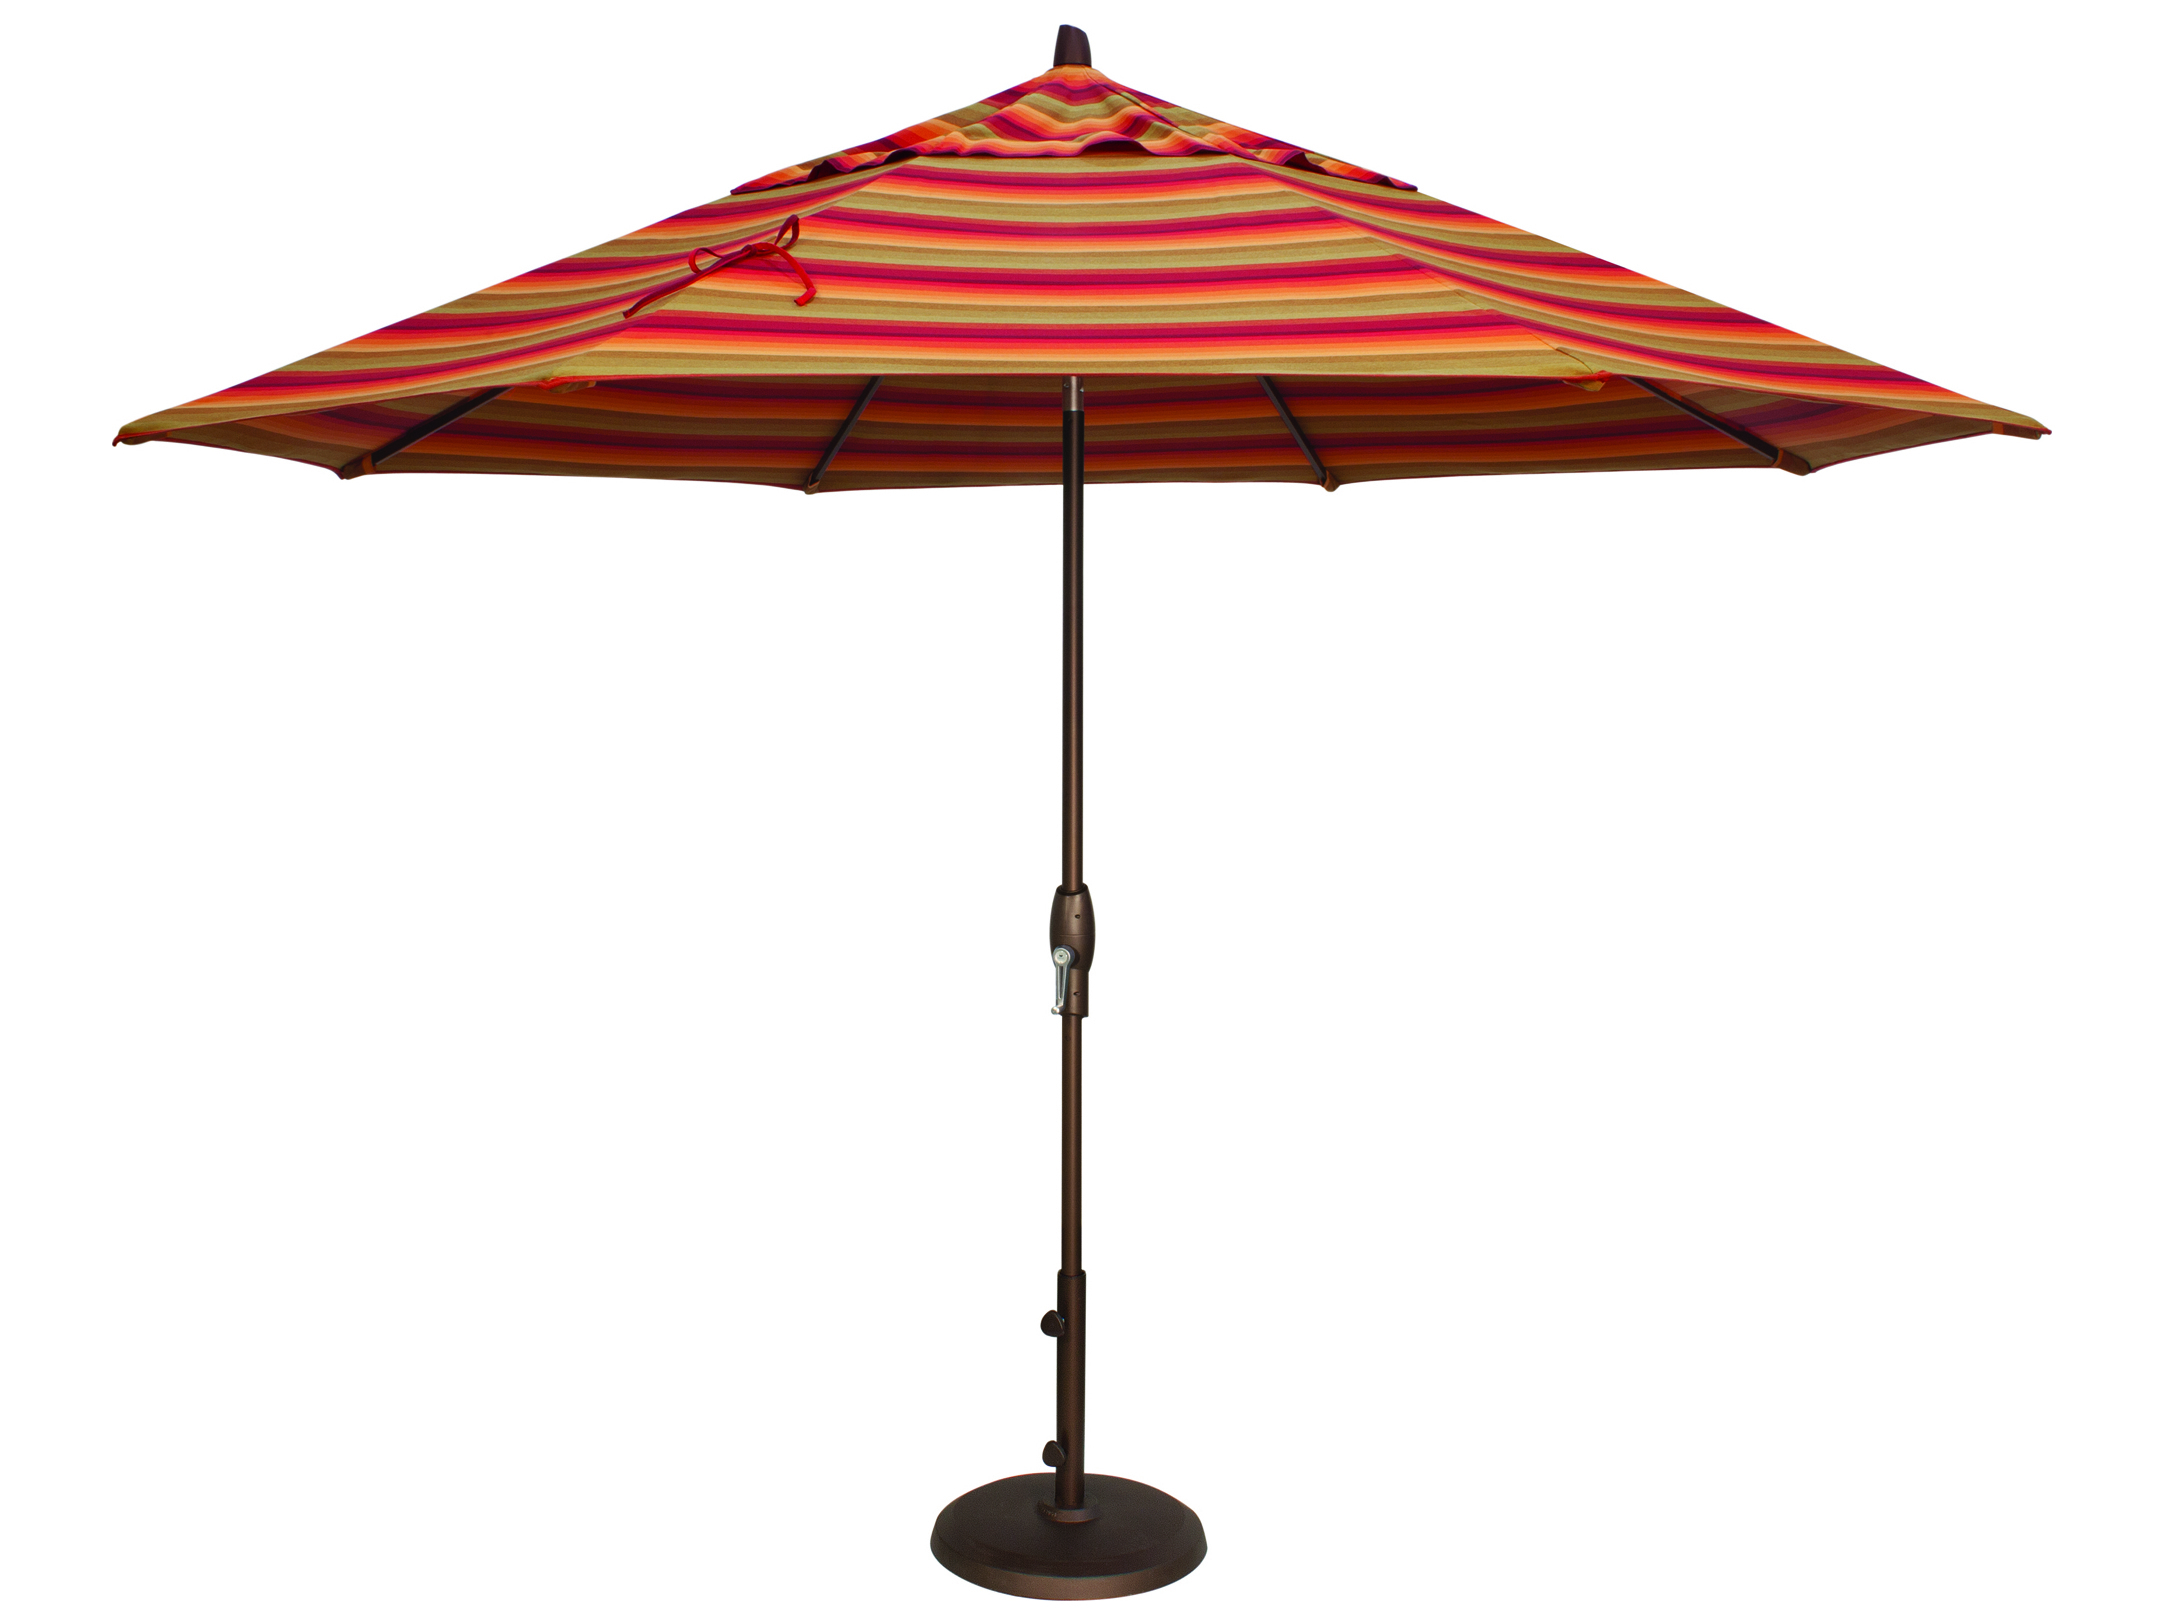 co larger amazon lawn garden umbrella tucson hills dp patio wall mission view